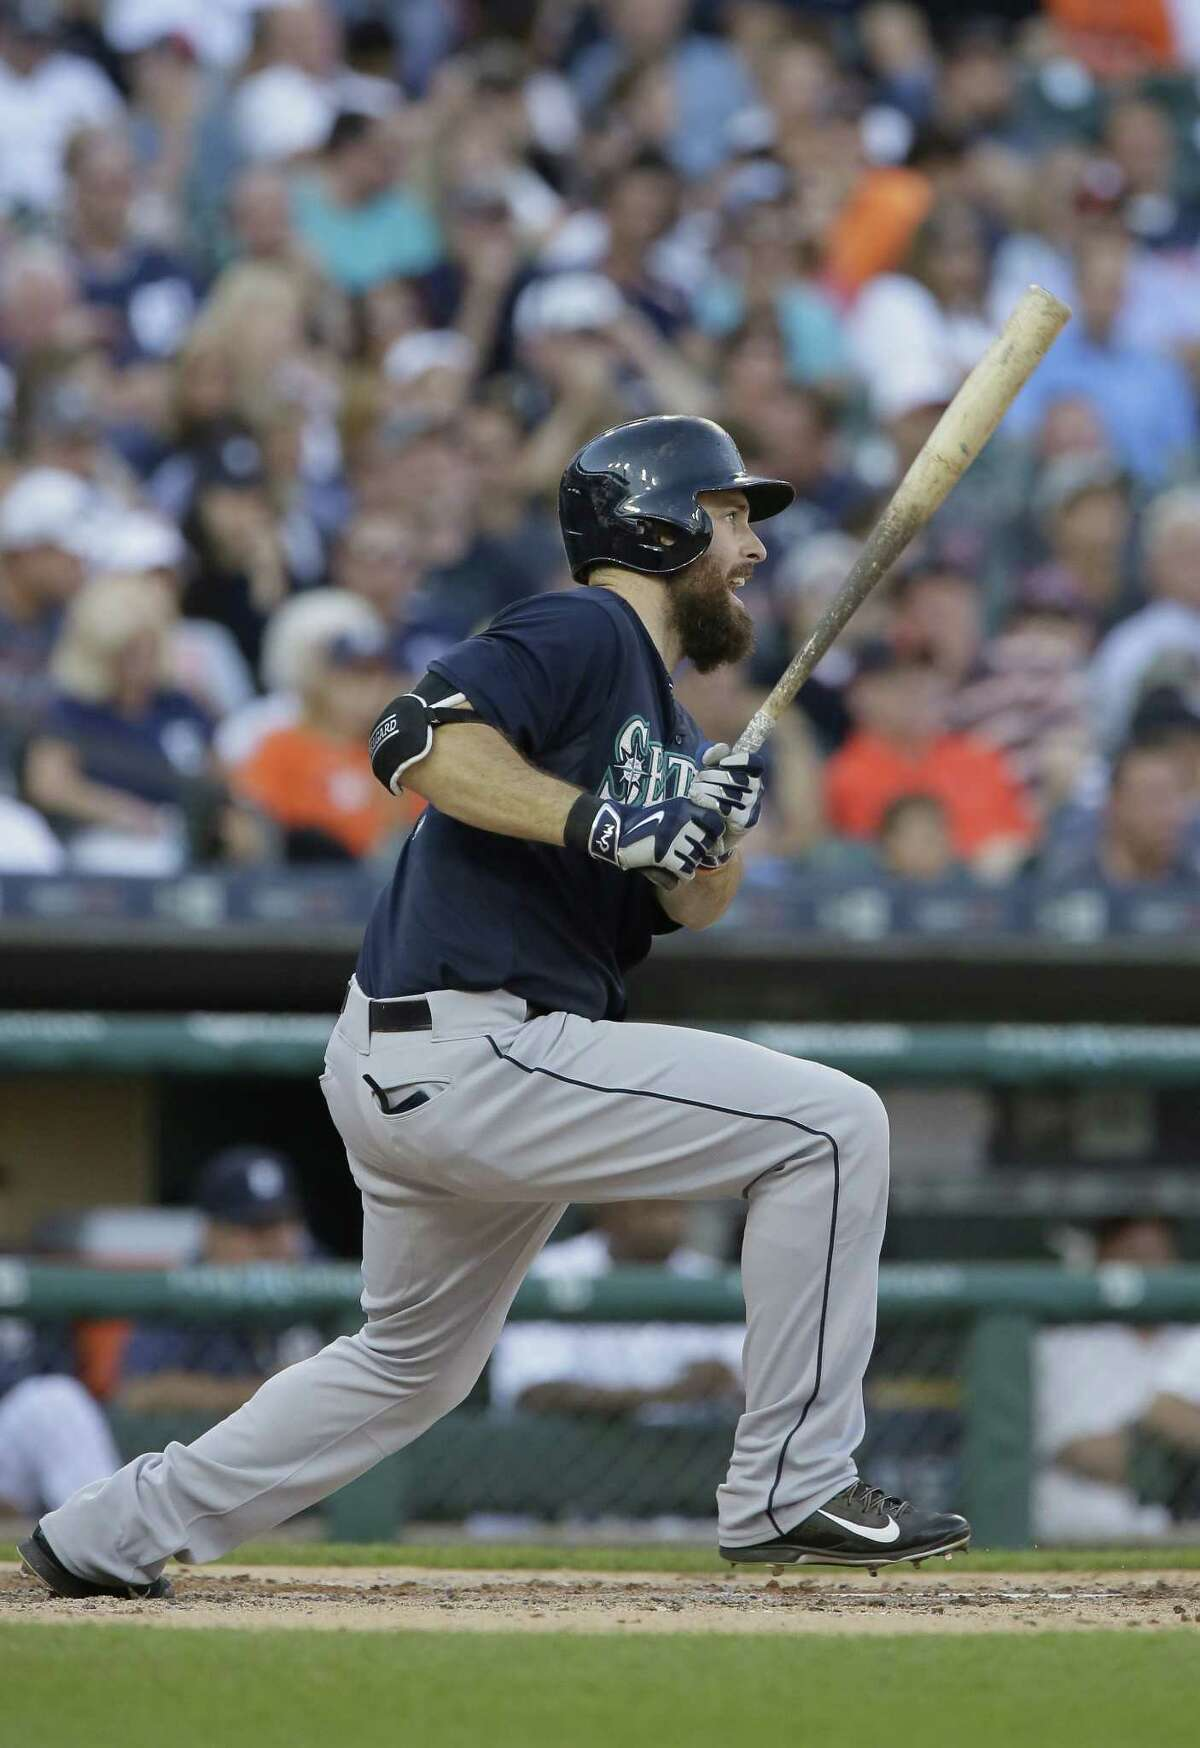 The New York Yankees placed Dustin Ackley on the 15-day DL.